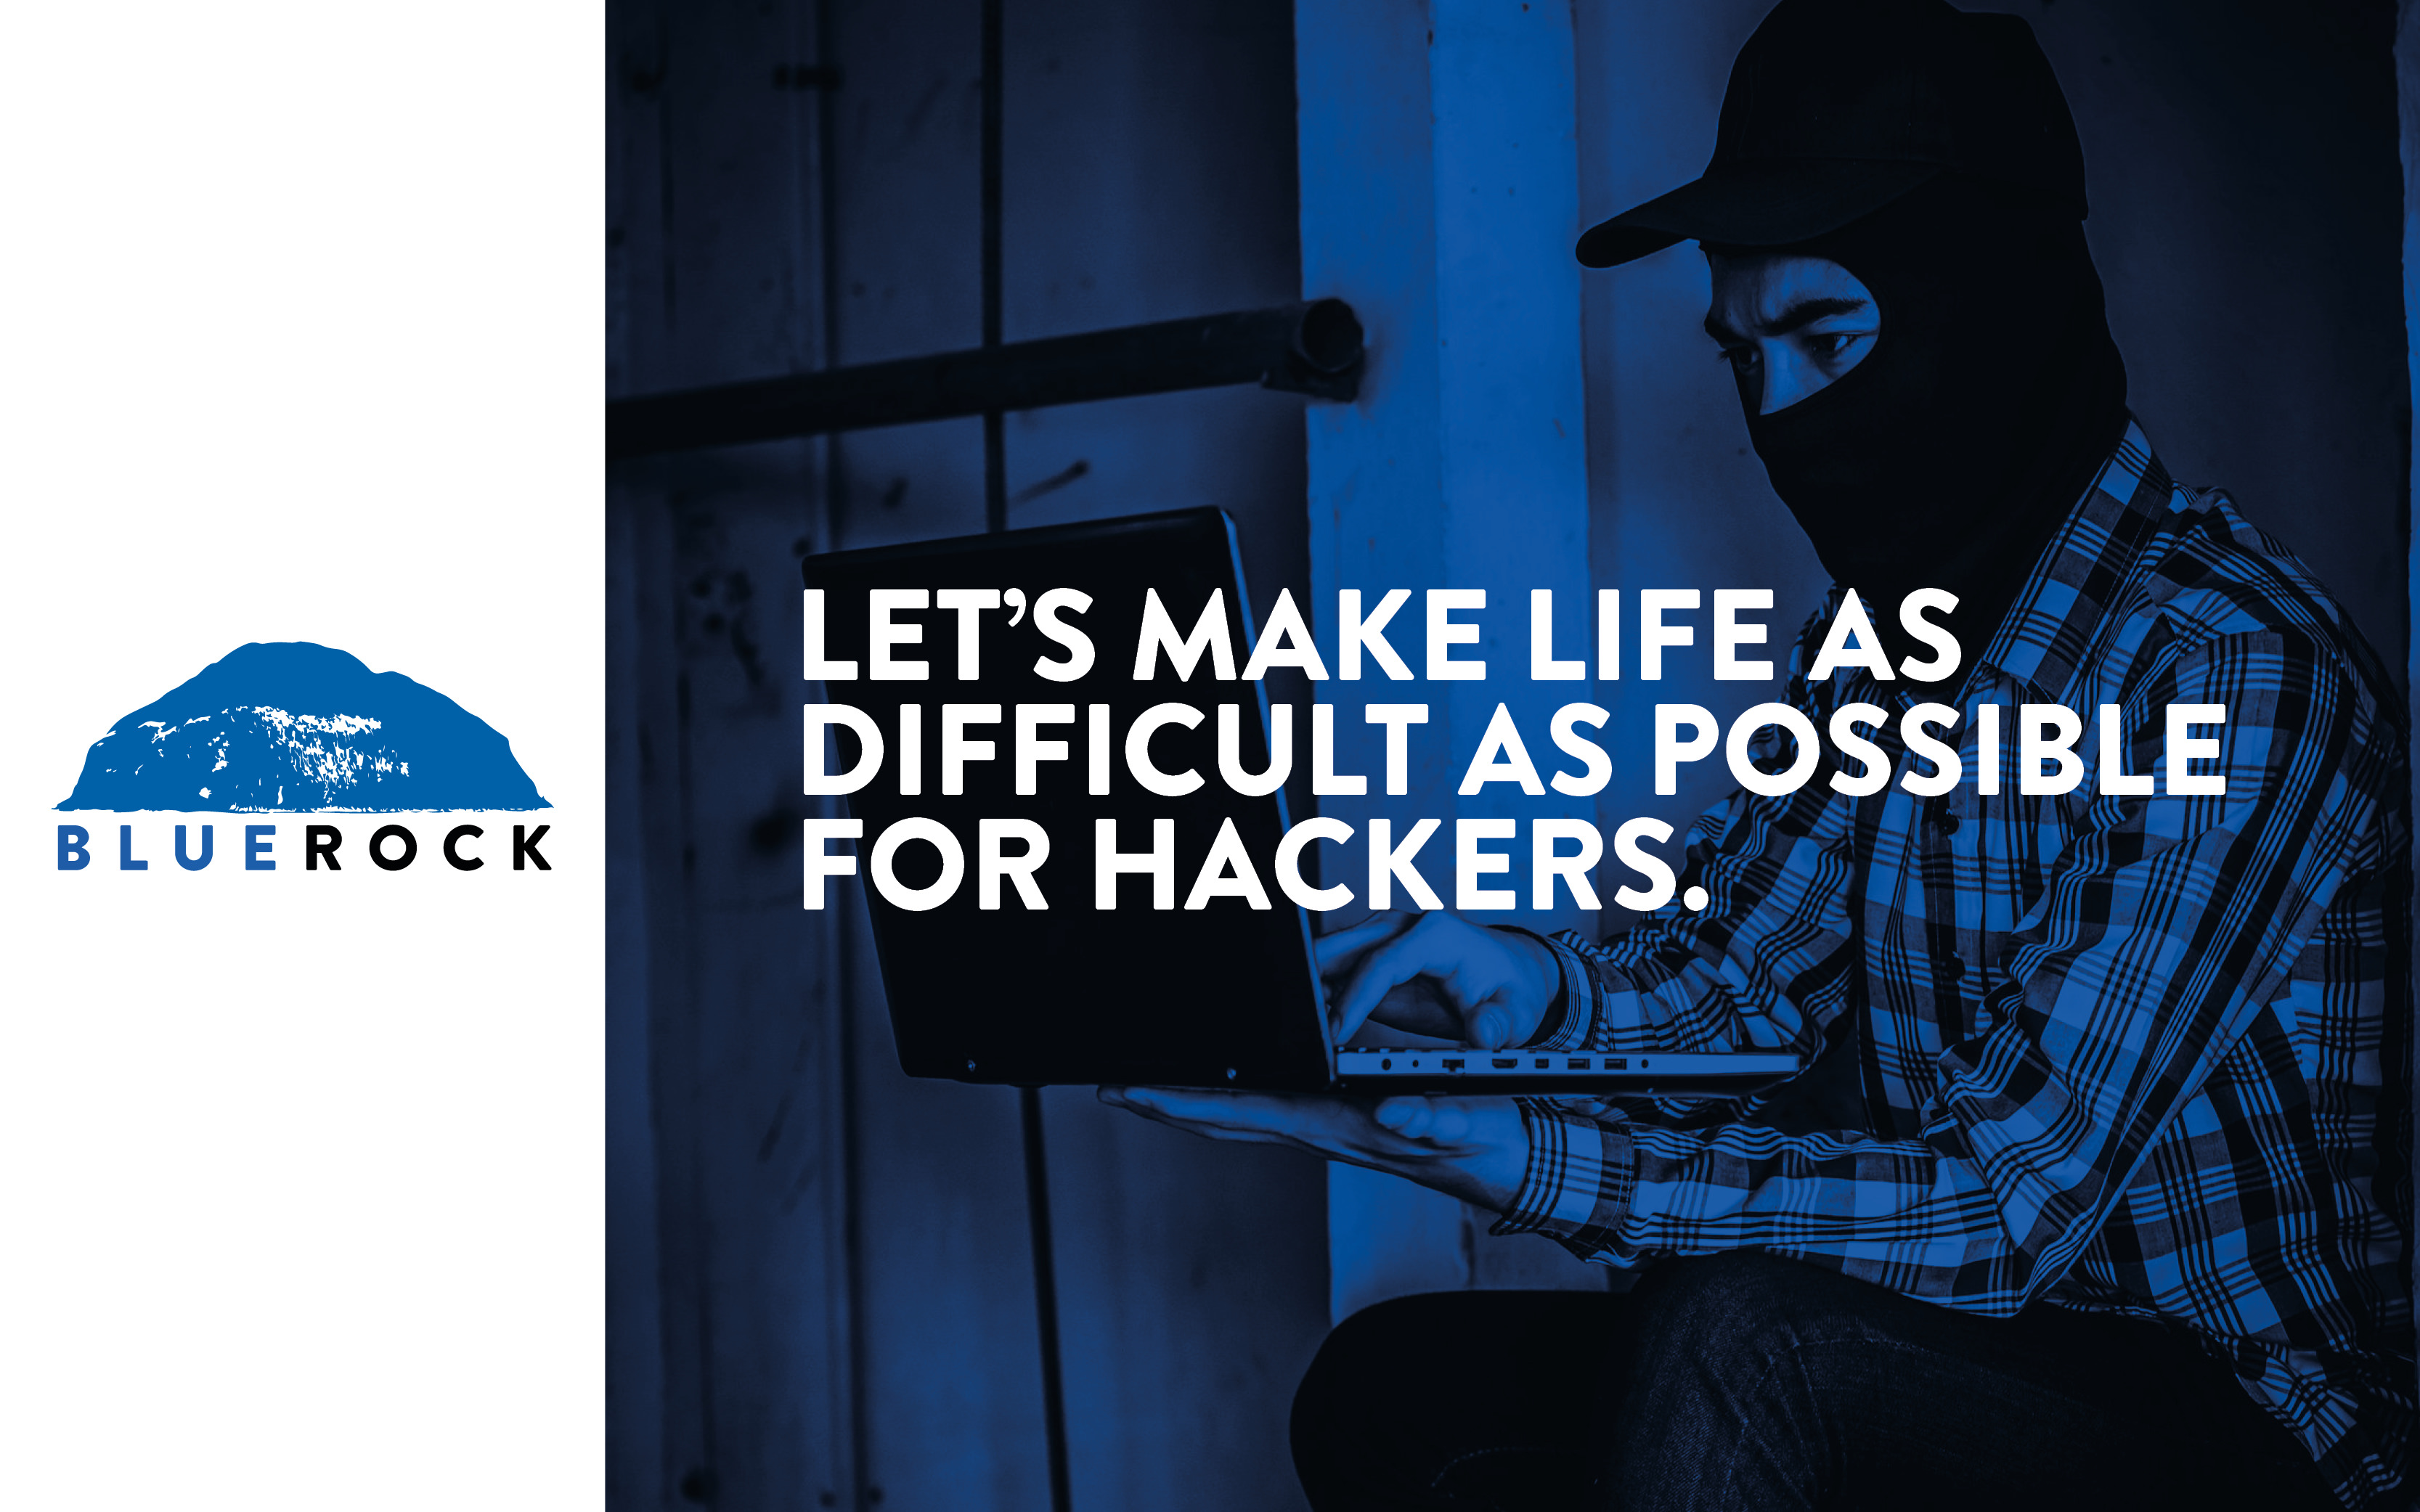 lets make life as difficult as possible for hackers